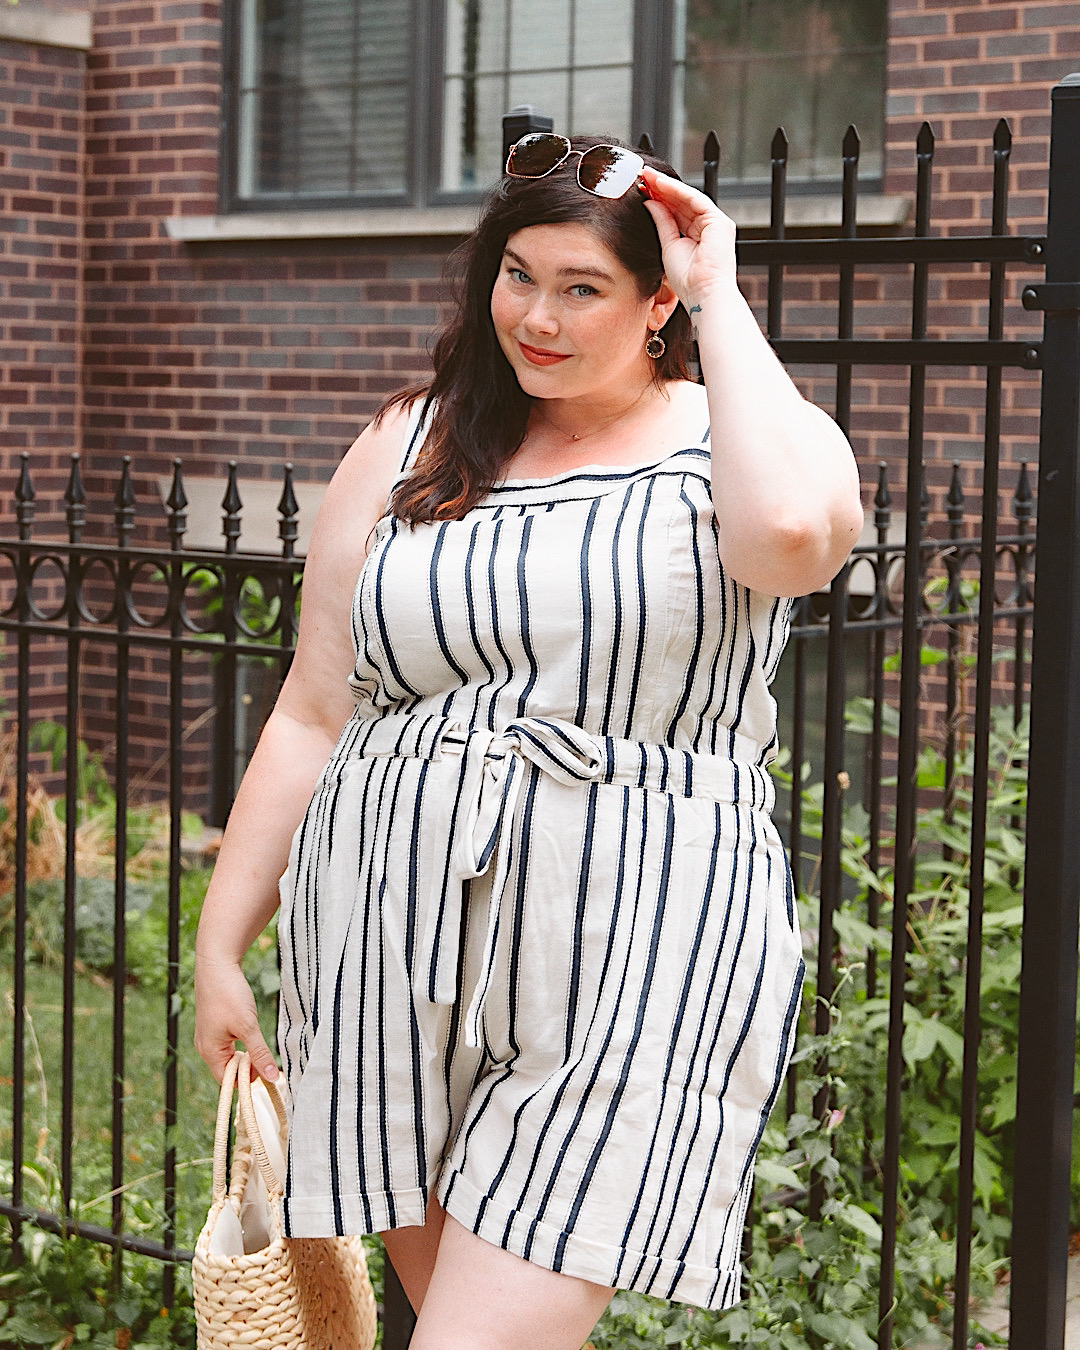 Casual Plus Size Summer Outfits From Lane Bryant